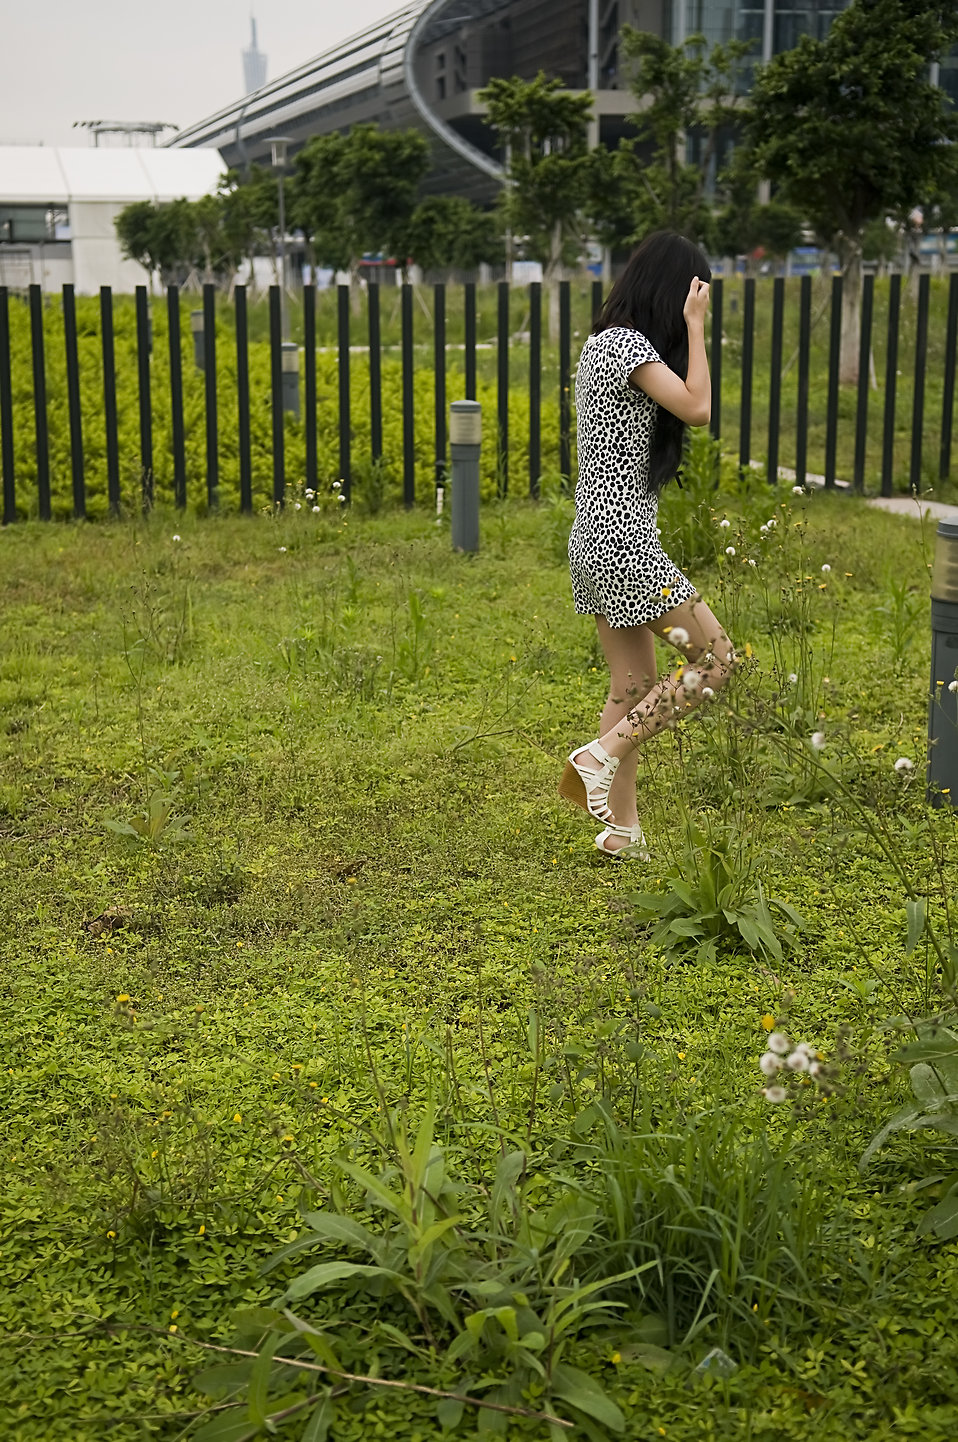 A beautiful Chinese girl walking in the grass : Free Stock Photo